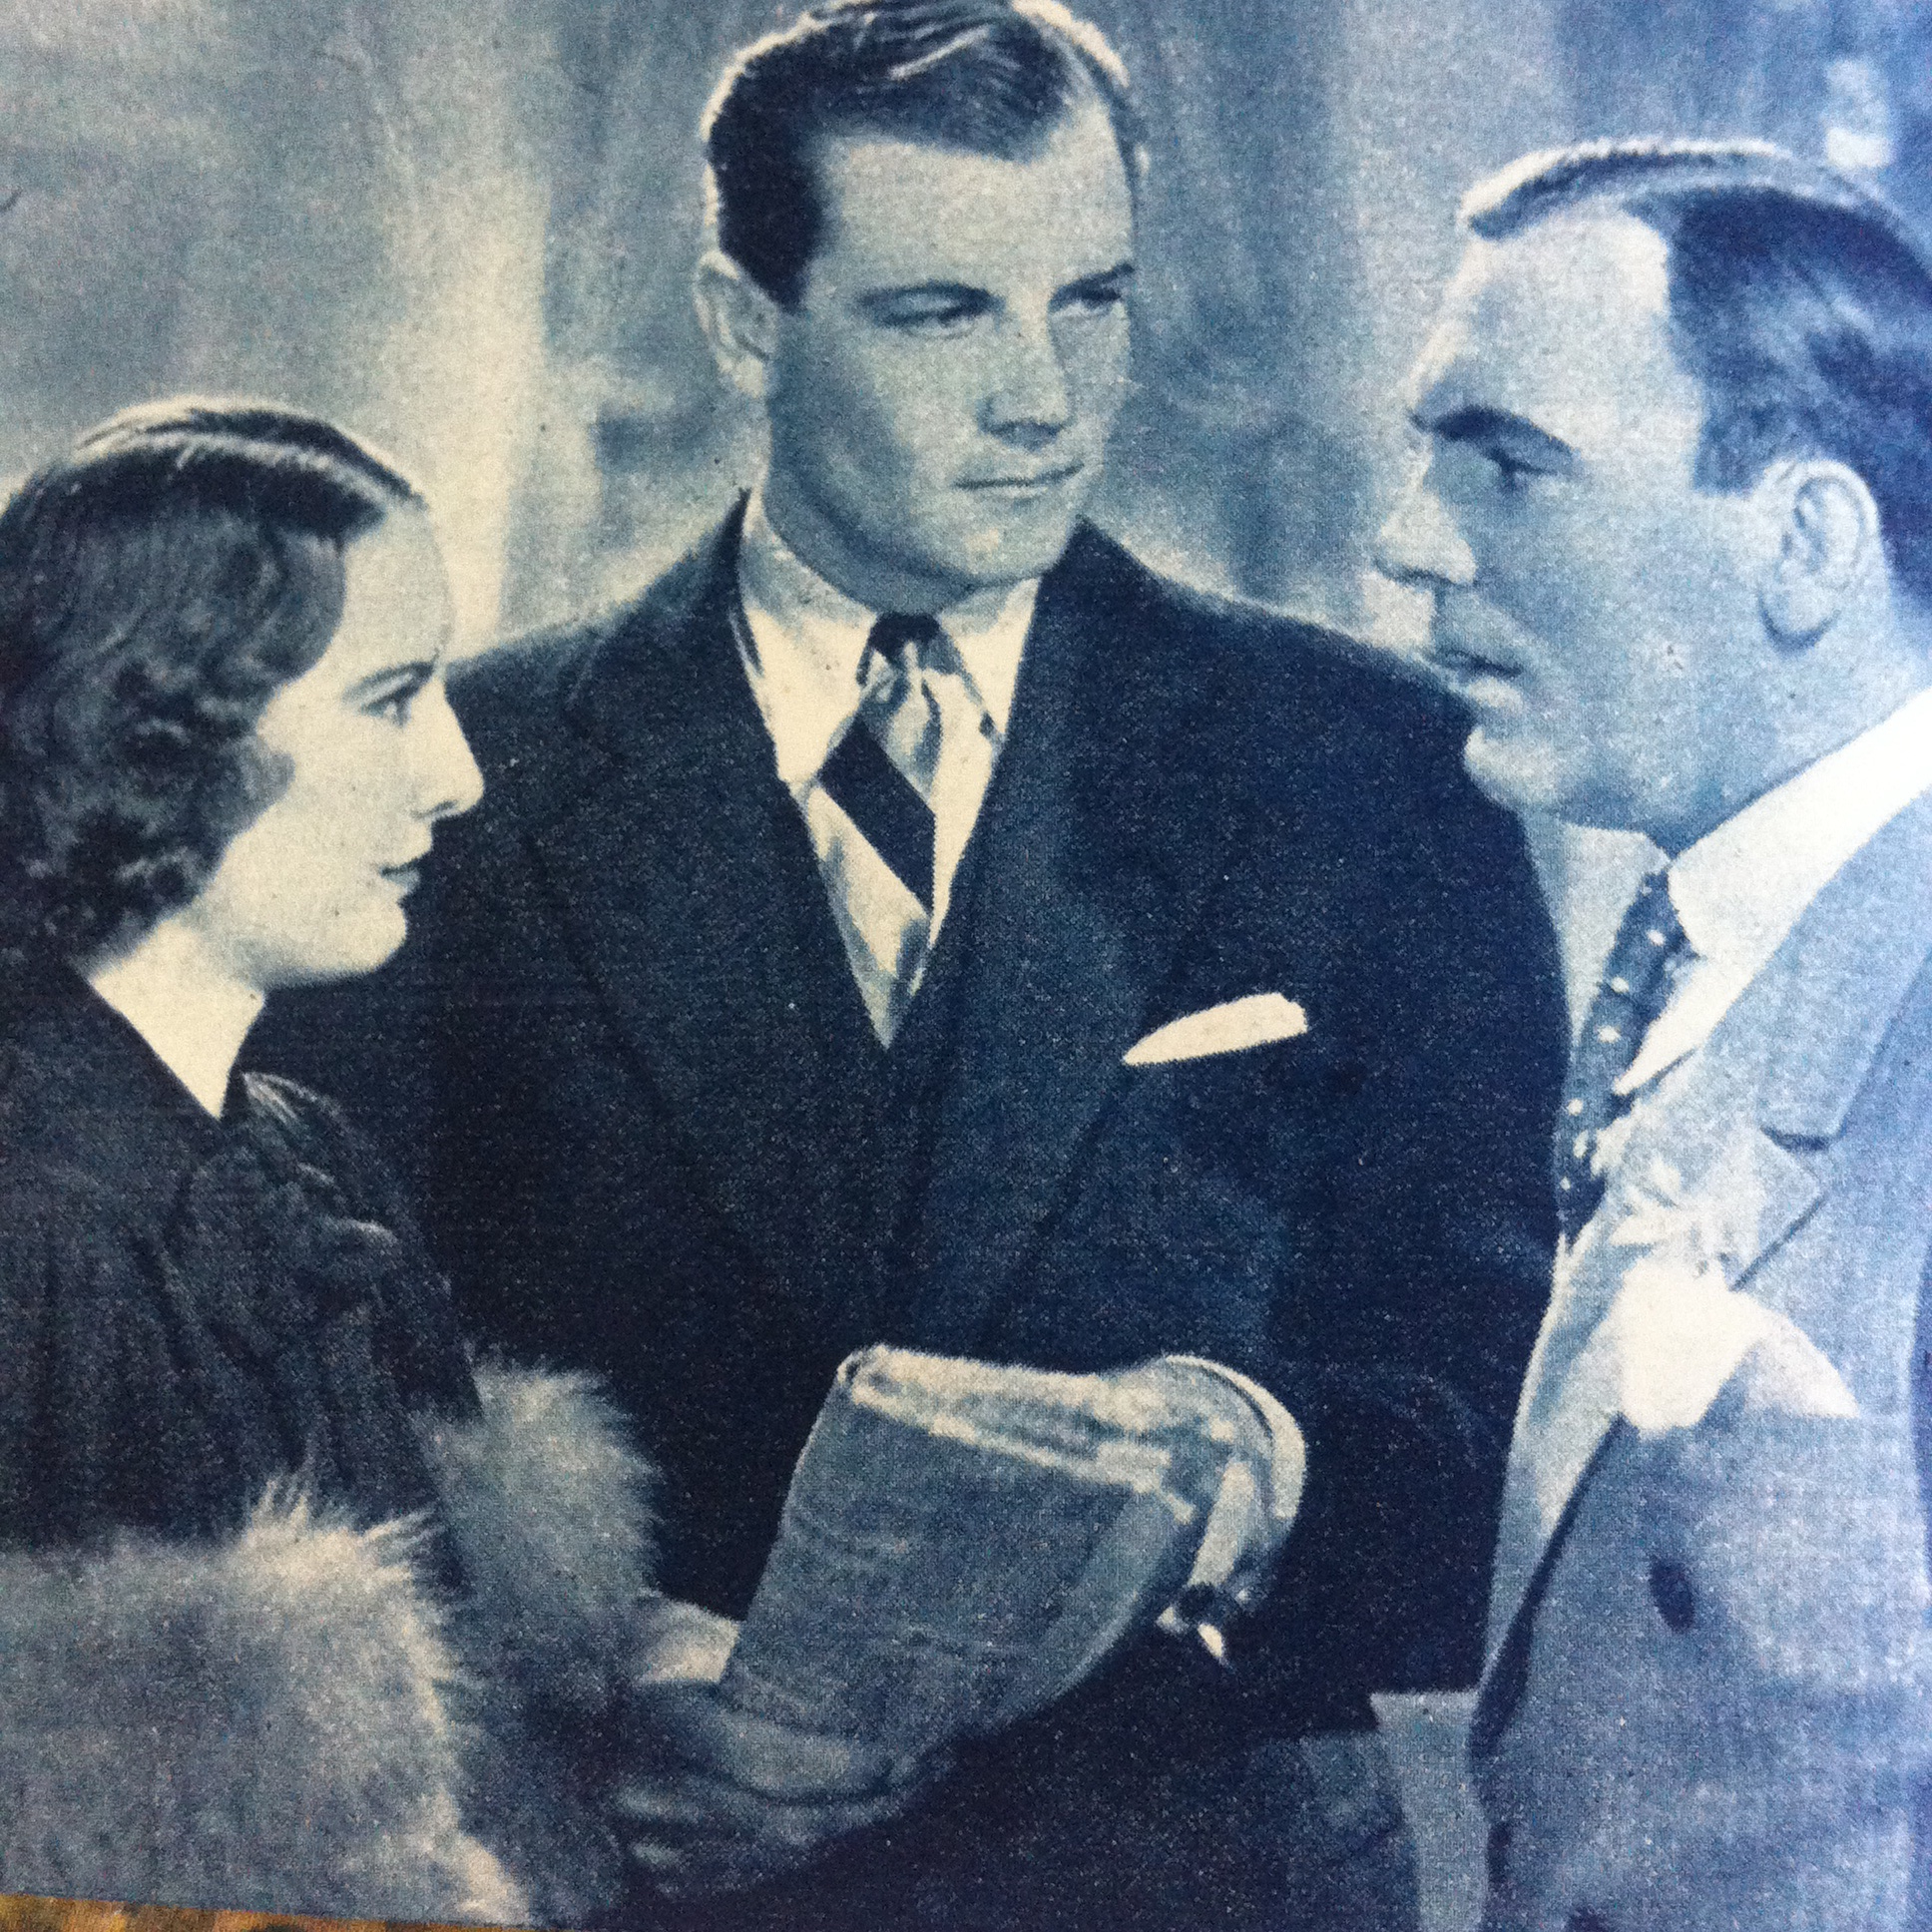 Barbara Stanwyck, Pat O'Brien, and Joel McCrea in Gambling Lady (1934)